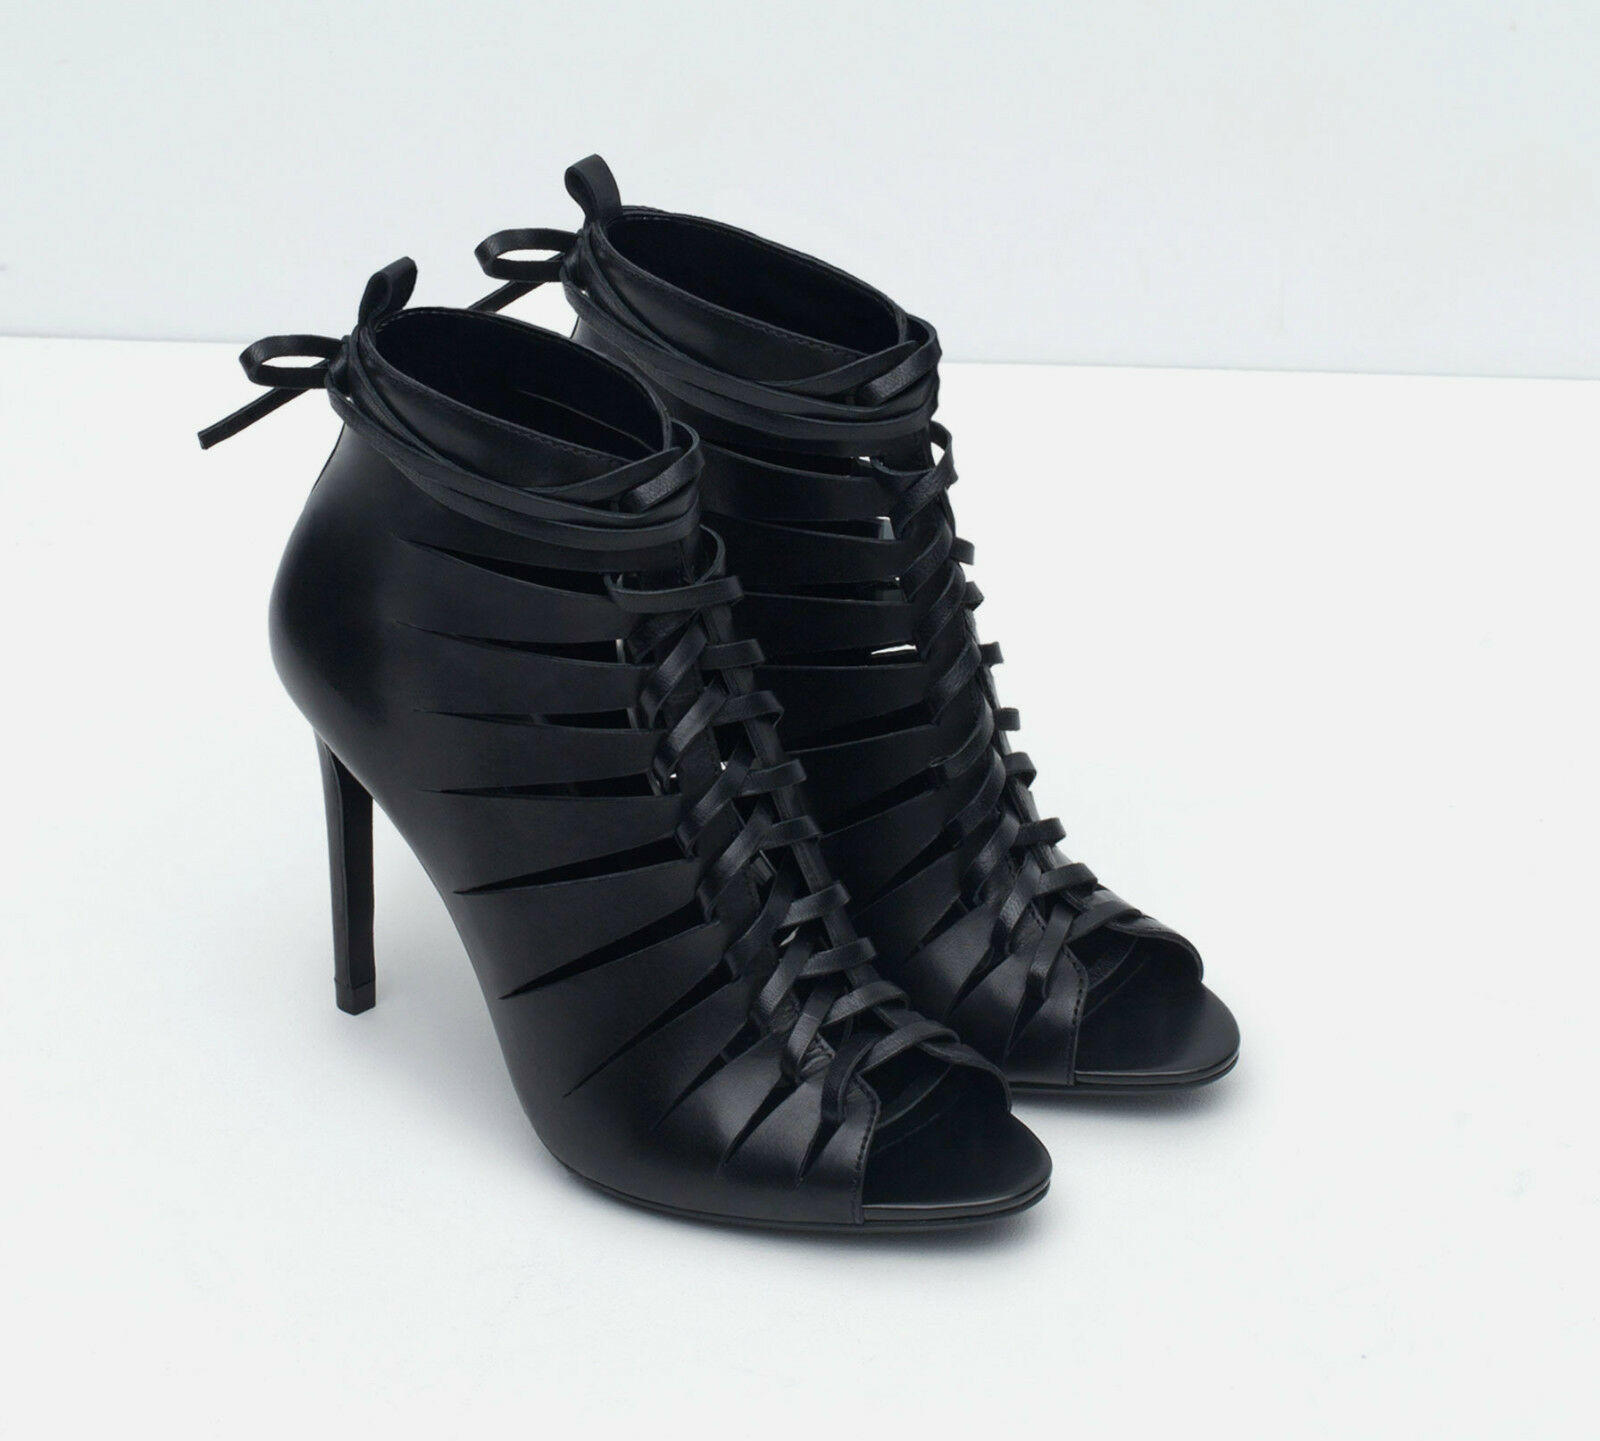 ZARA BLACK LEATHER HIGH HEEL UK BOOTIE STYLE SANDALS FW15 UK HEEL SIZES 5, 6 & 7 NEW a92bfe